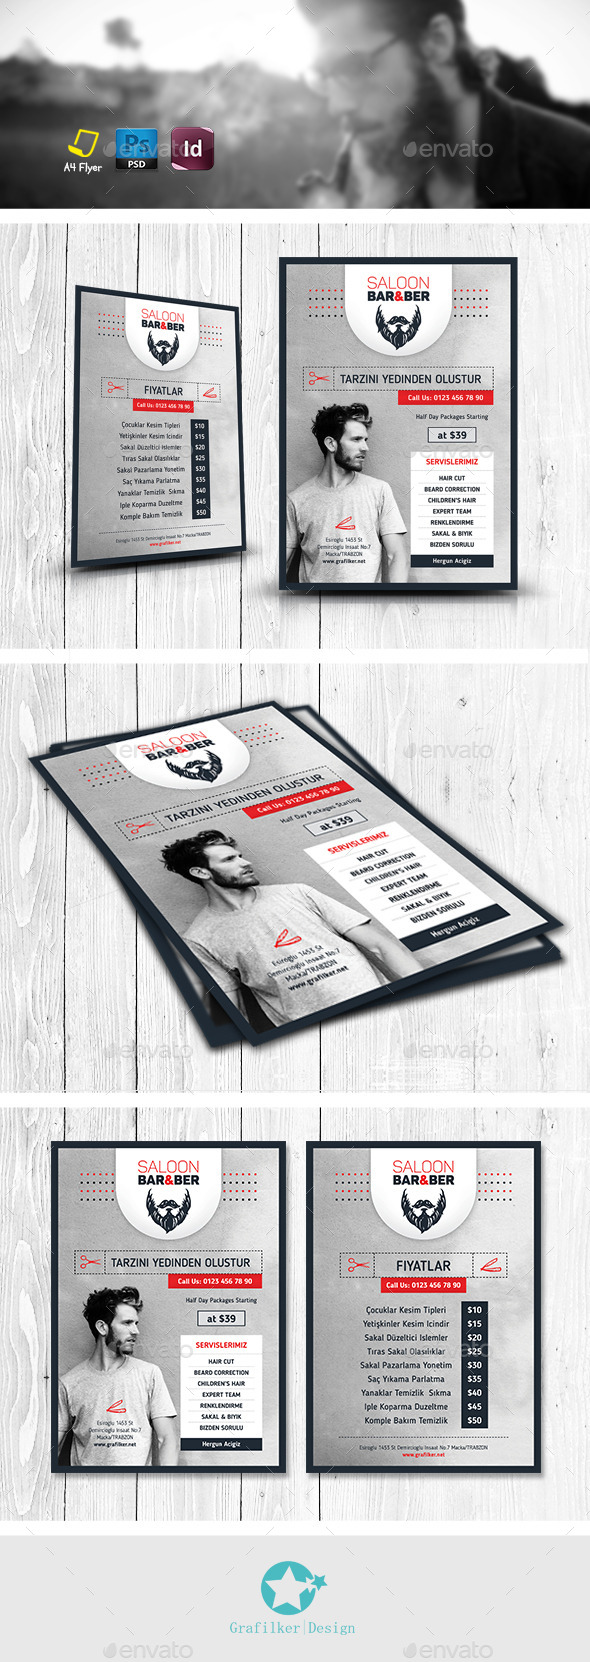 Barber Saloon Flyer Templates by grafilker | GraphicRiver